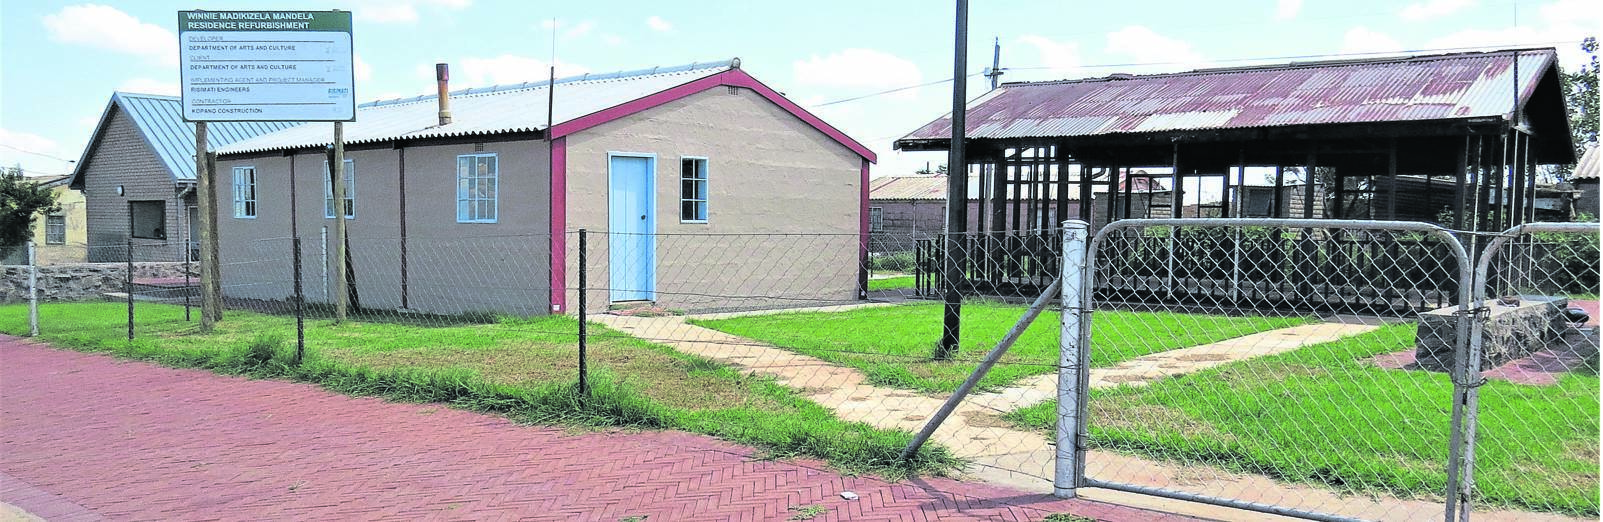 The restored Winnie Madikizela-Mandela Brandfort House Museum in Majwemasweu, Brandfort. Behind the house is a newly built structure believed to be part of the museum. Photo: Teboho Setena